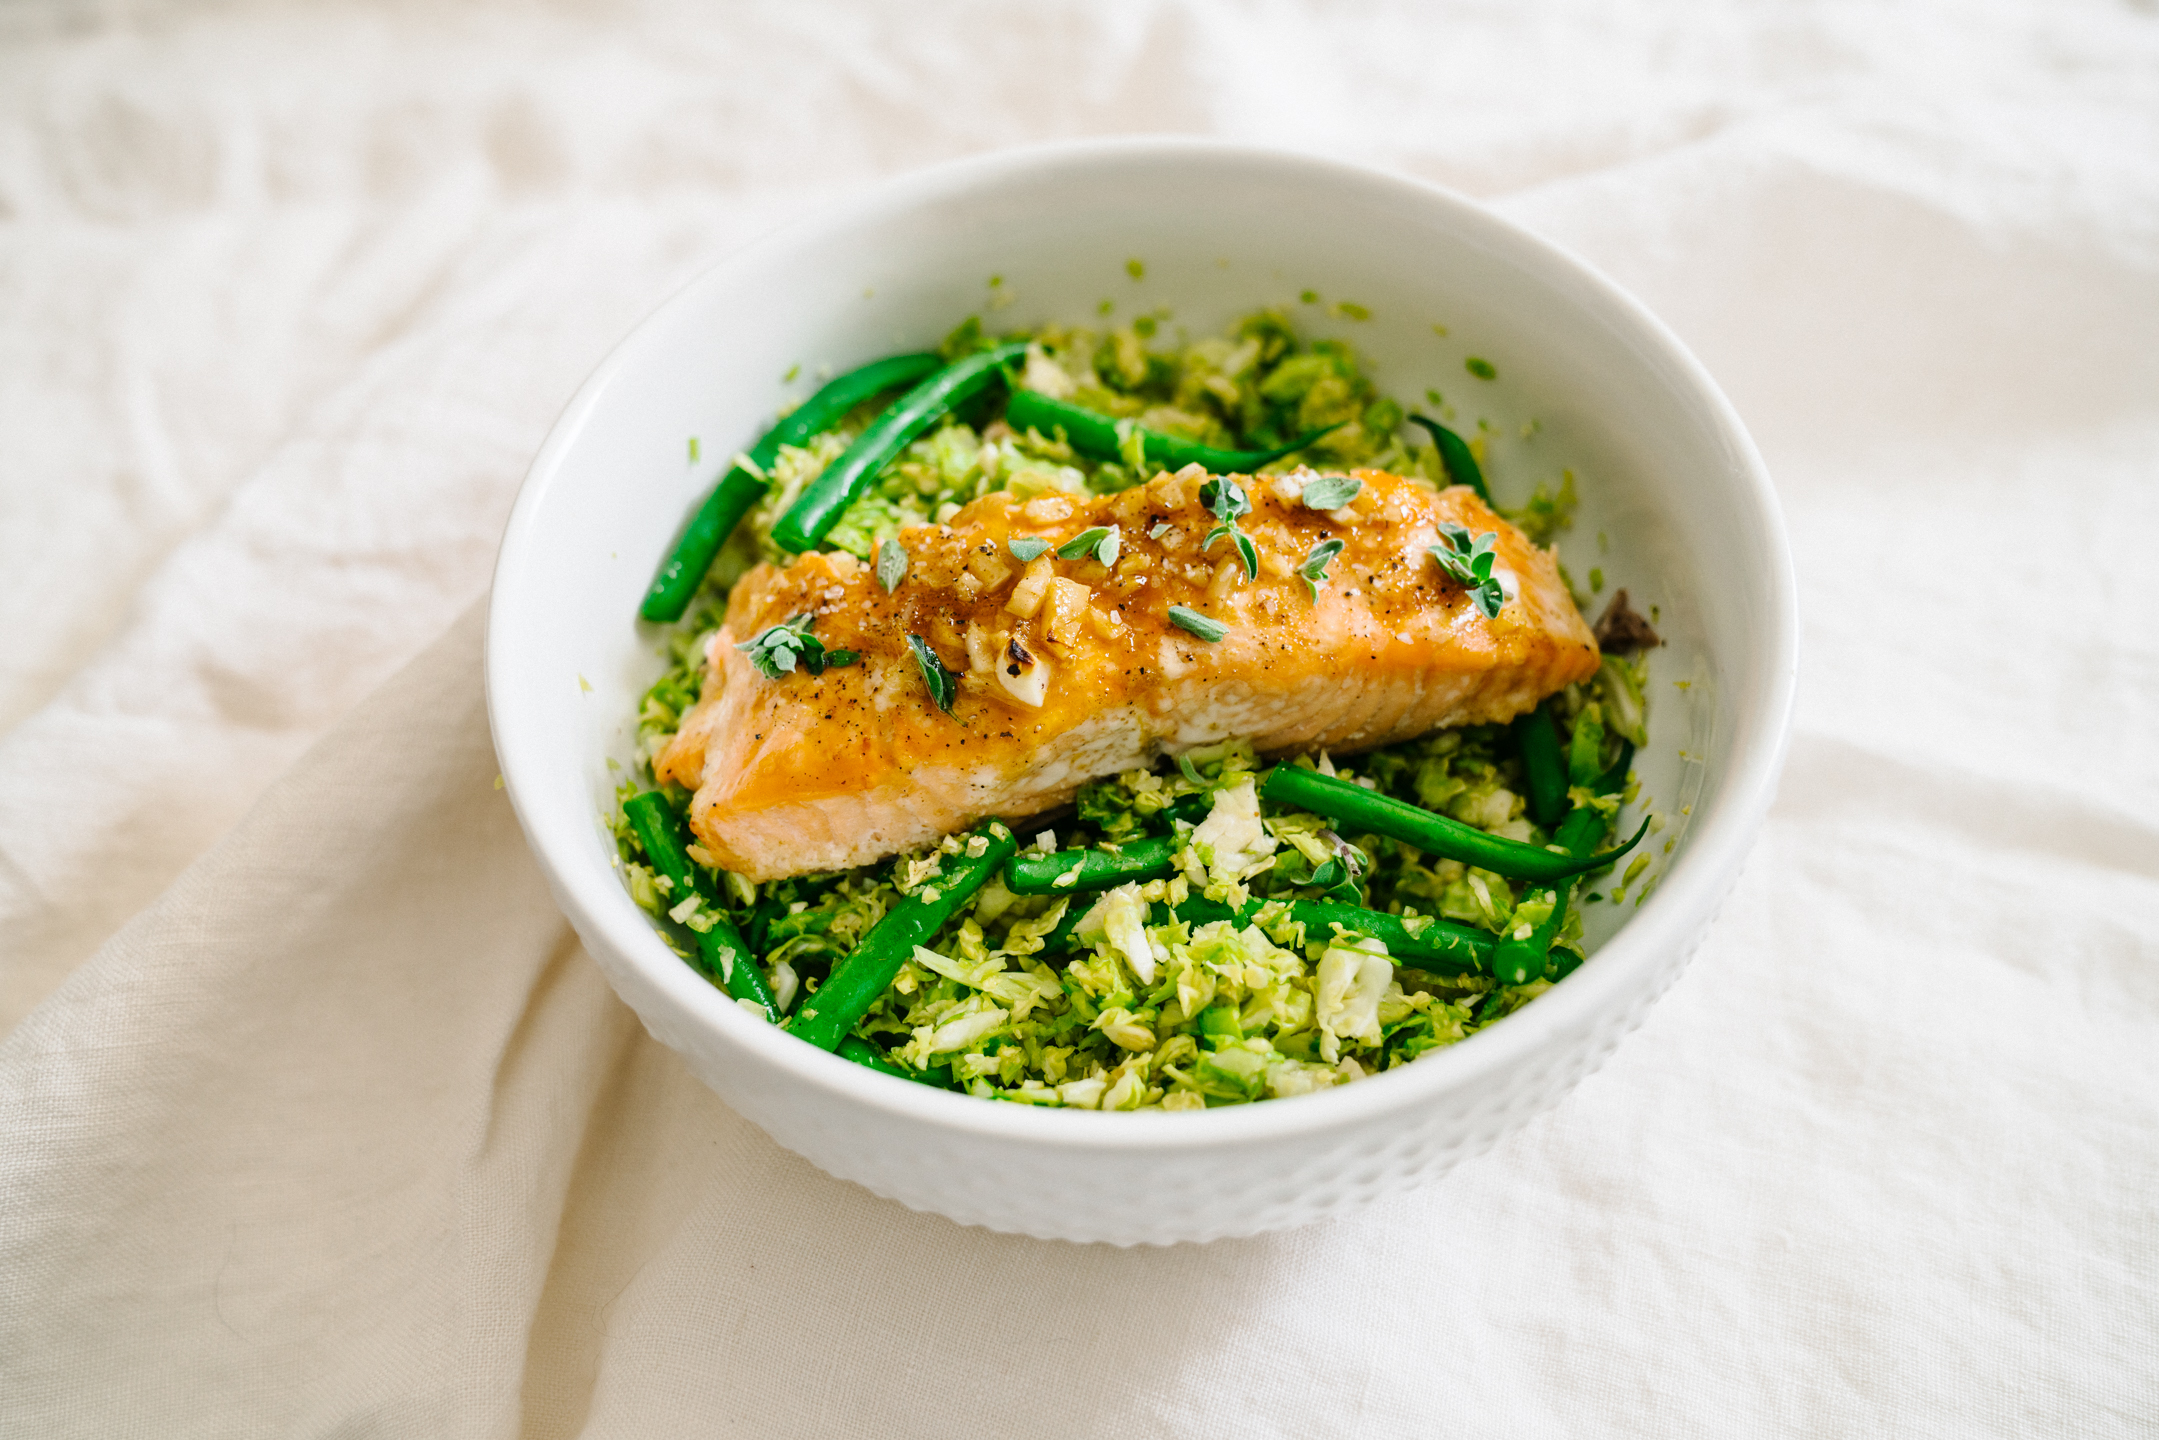 cuban lacquered salmon with winter salad